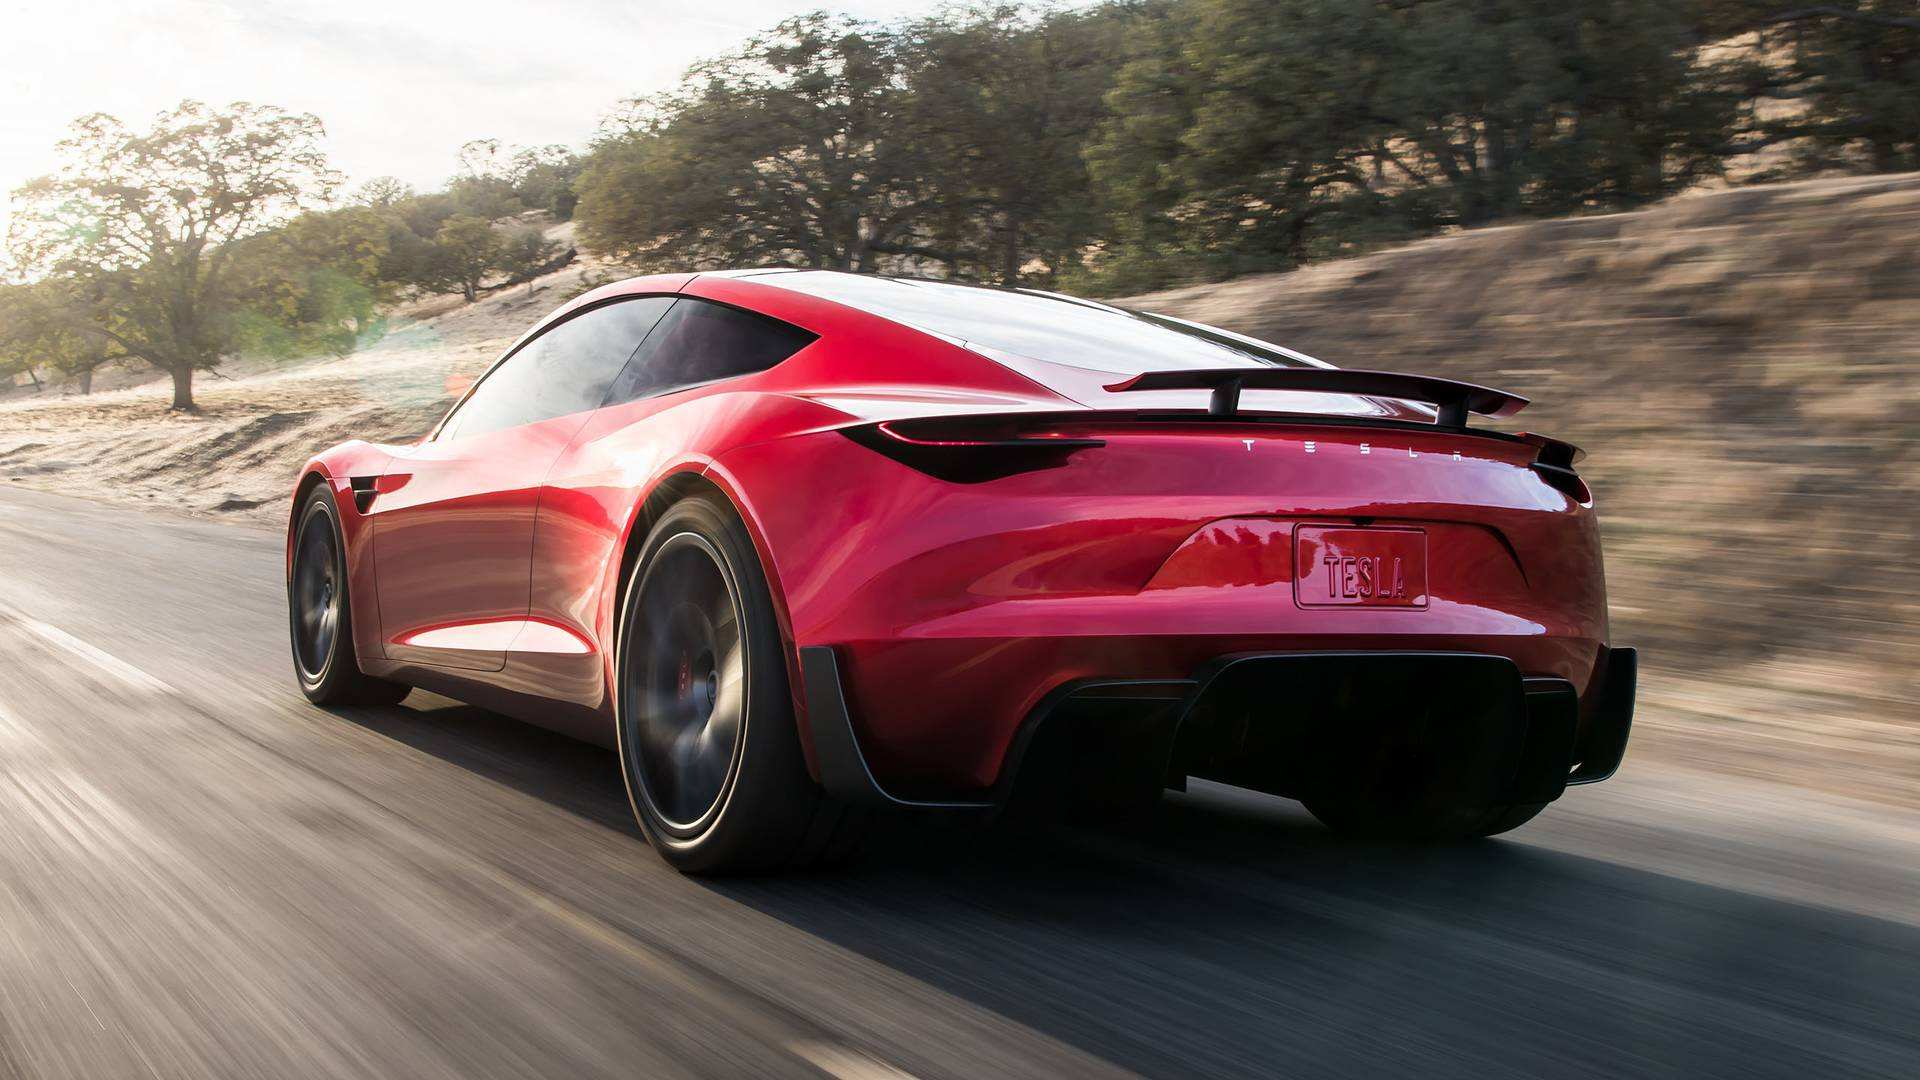 93 The 2020 Tesla Roadster 0 60 Prices by 2020 Tesla Roadster 0 60